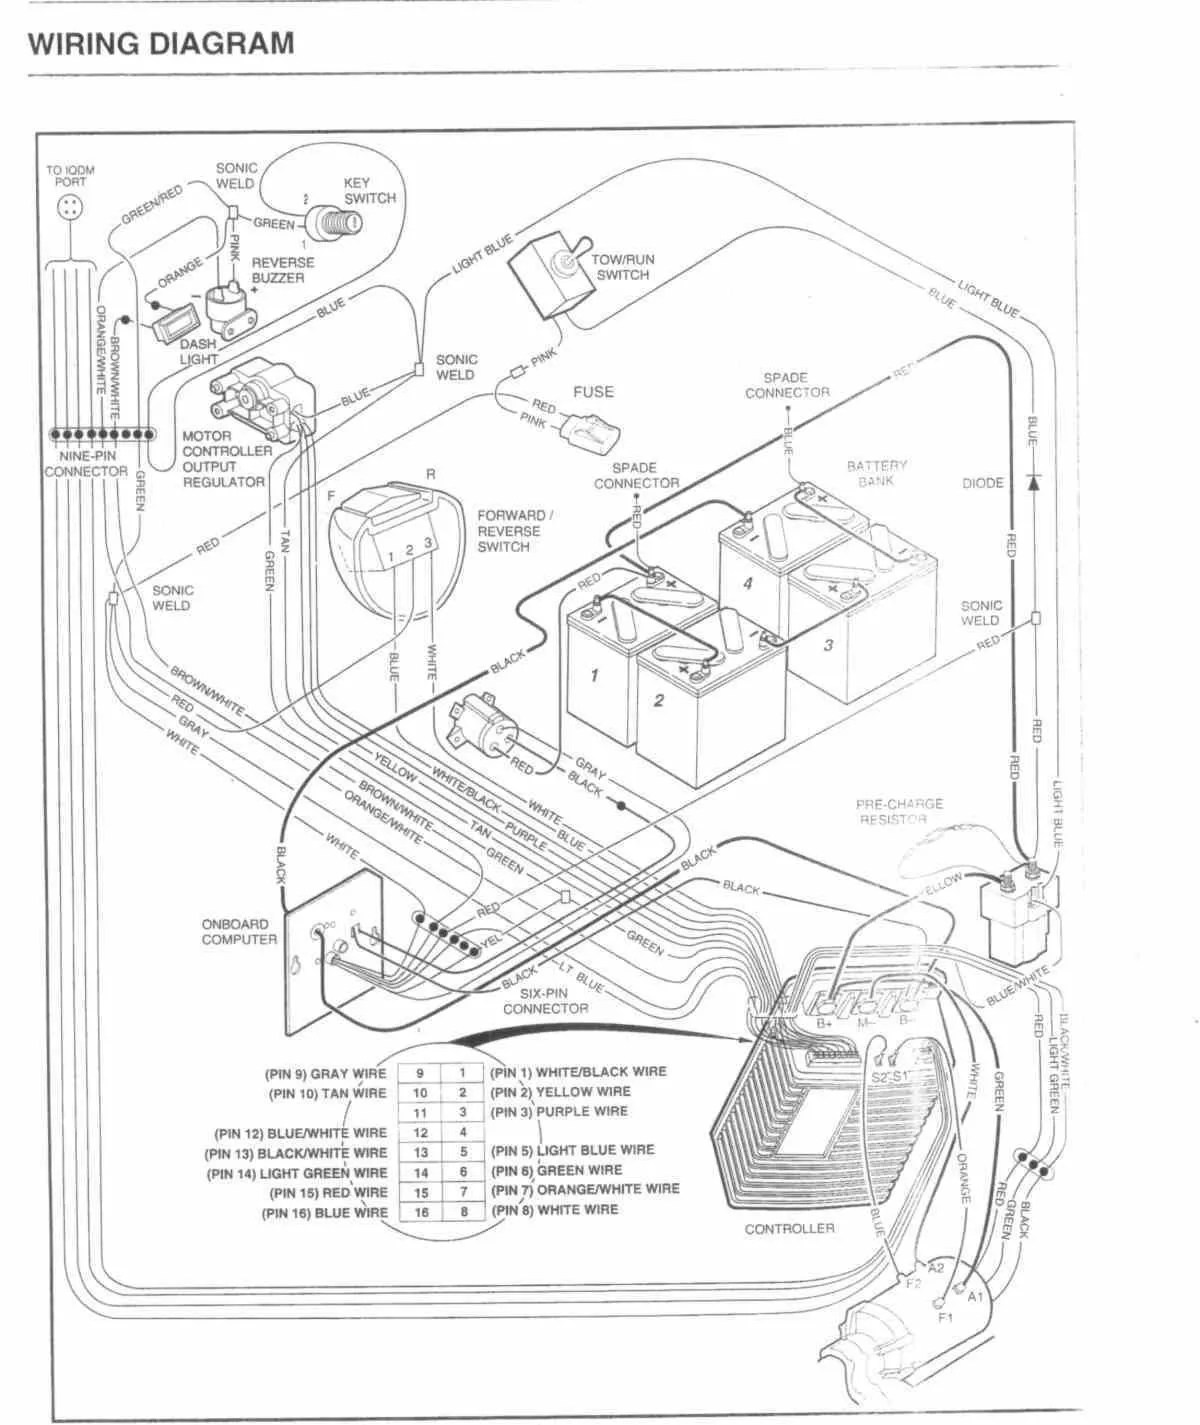 hight resolution of club car wiring diagram diagrams for gas club golf cart the volt club full ponent 1986